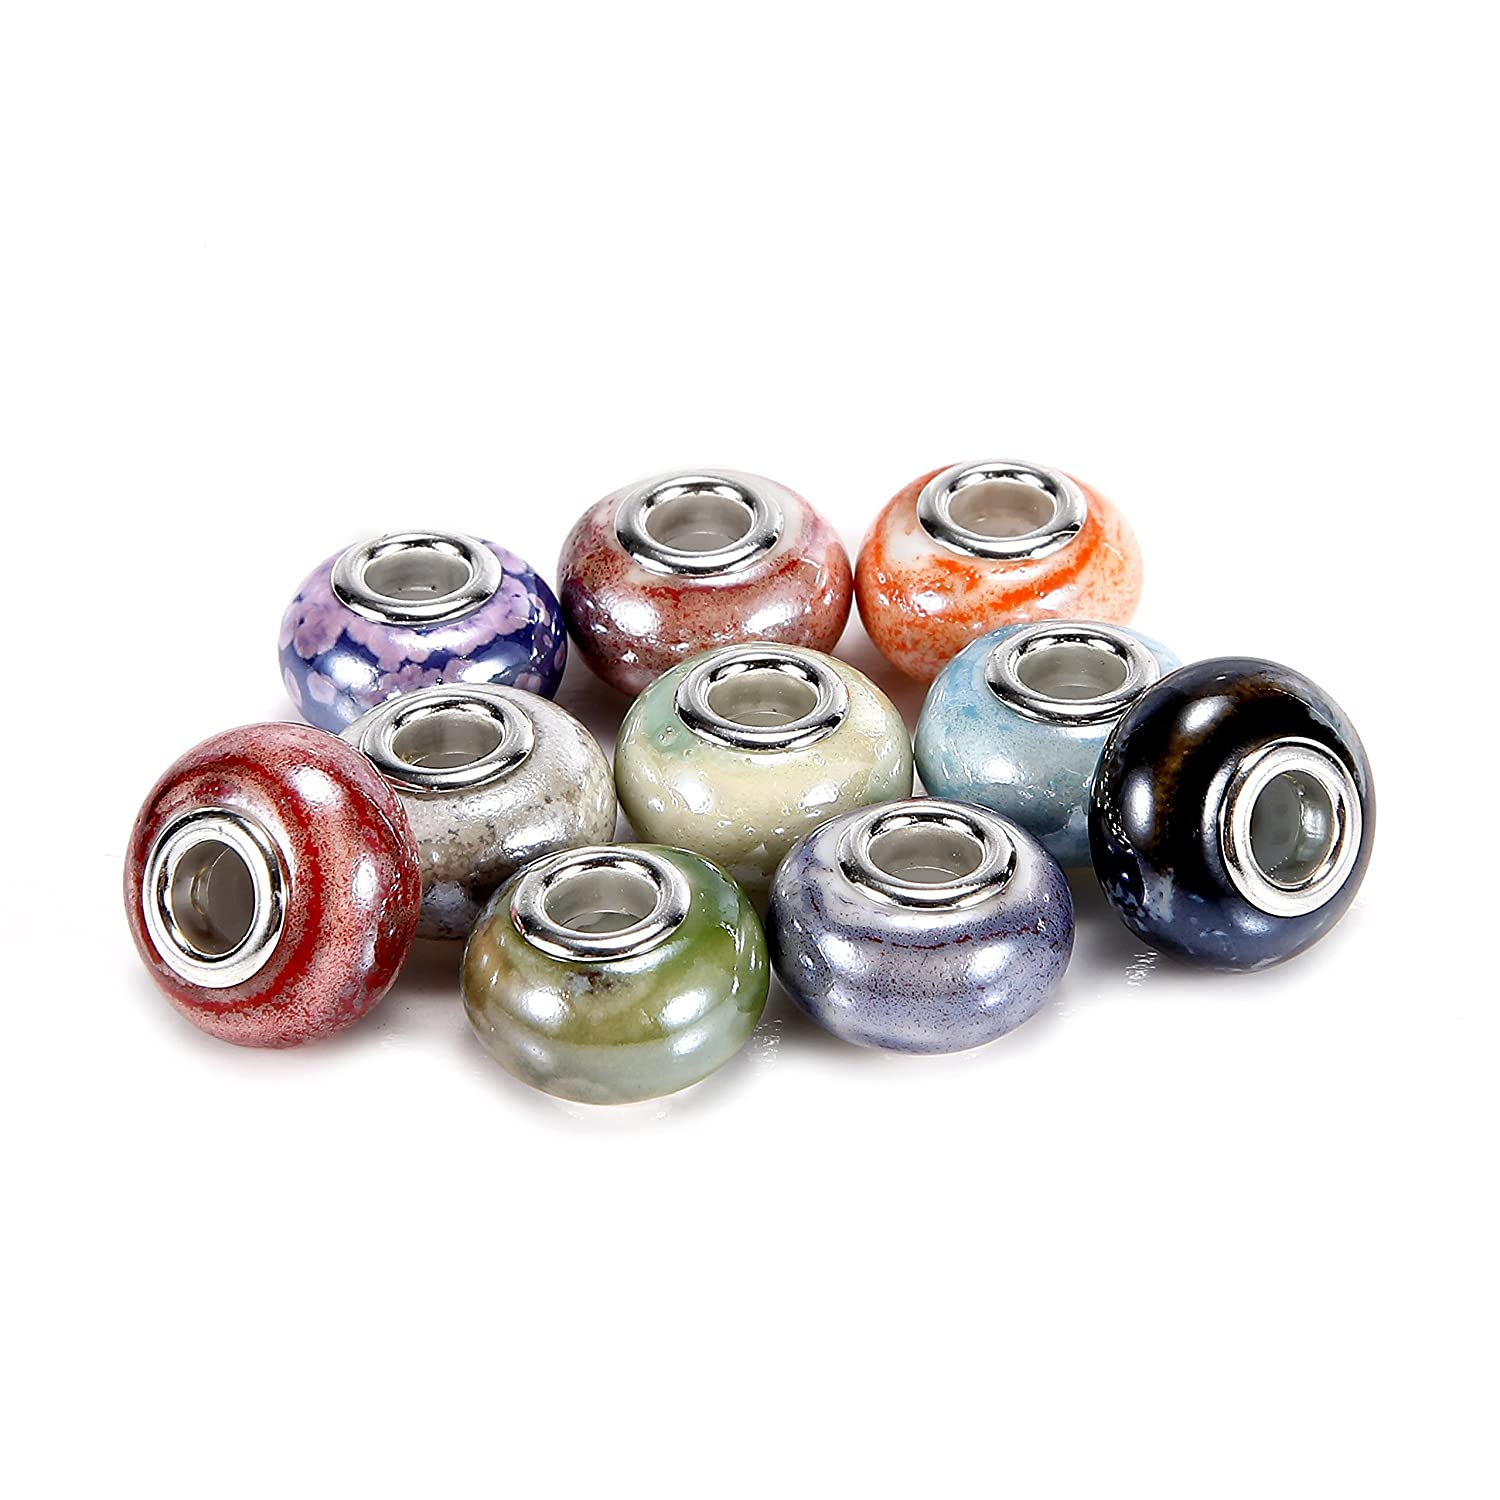 BRCbeads Top Quality 100Pcs Mix Silver Plate STYLE4 Murano Lampwork European Glass Crystal Charms Beads Spacers Fit Troll Chamilia Carlo Biagi Zable Snake Chain Charm Bracelets. BRC Creative Corp. 4336815119